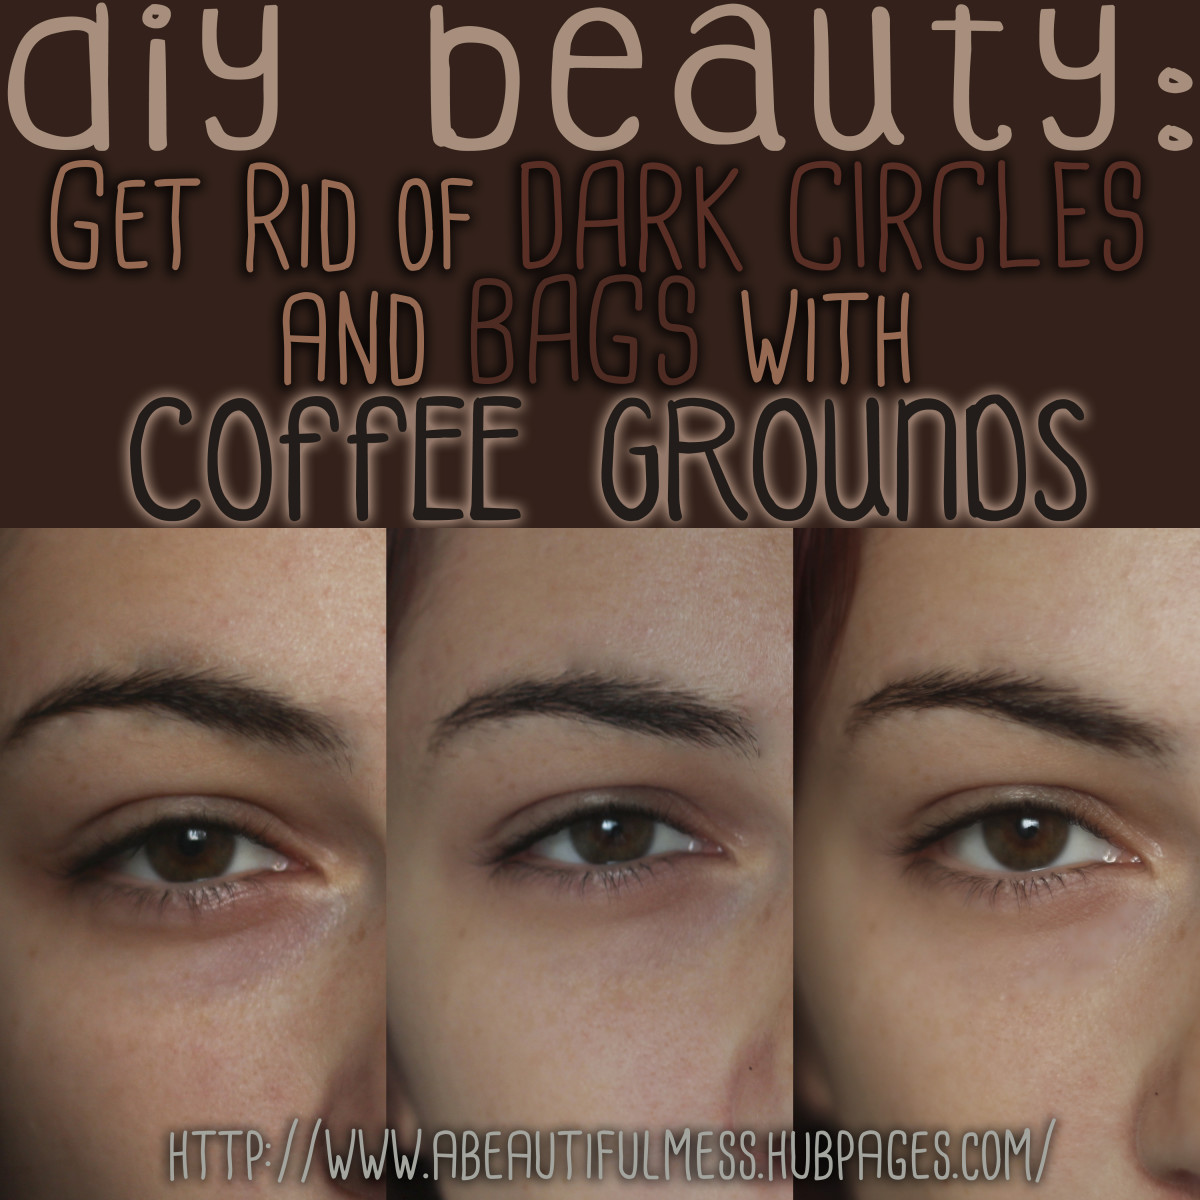 DIY Beauty: Get Rid of Undereye Bags and Dark Circles With Coffee Grounds